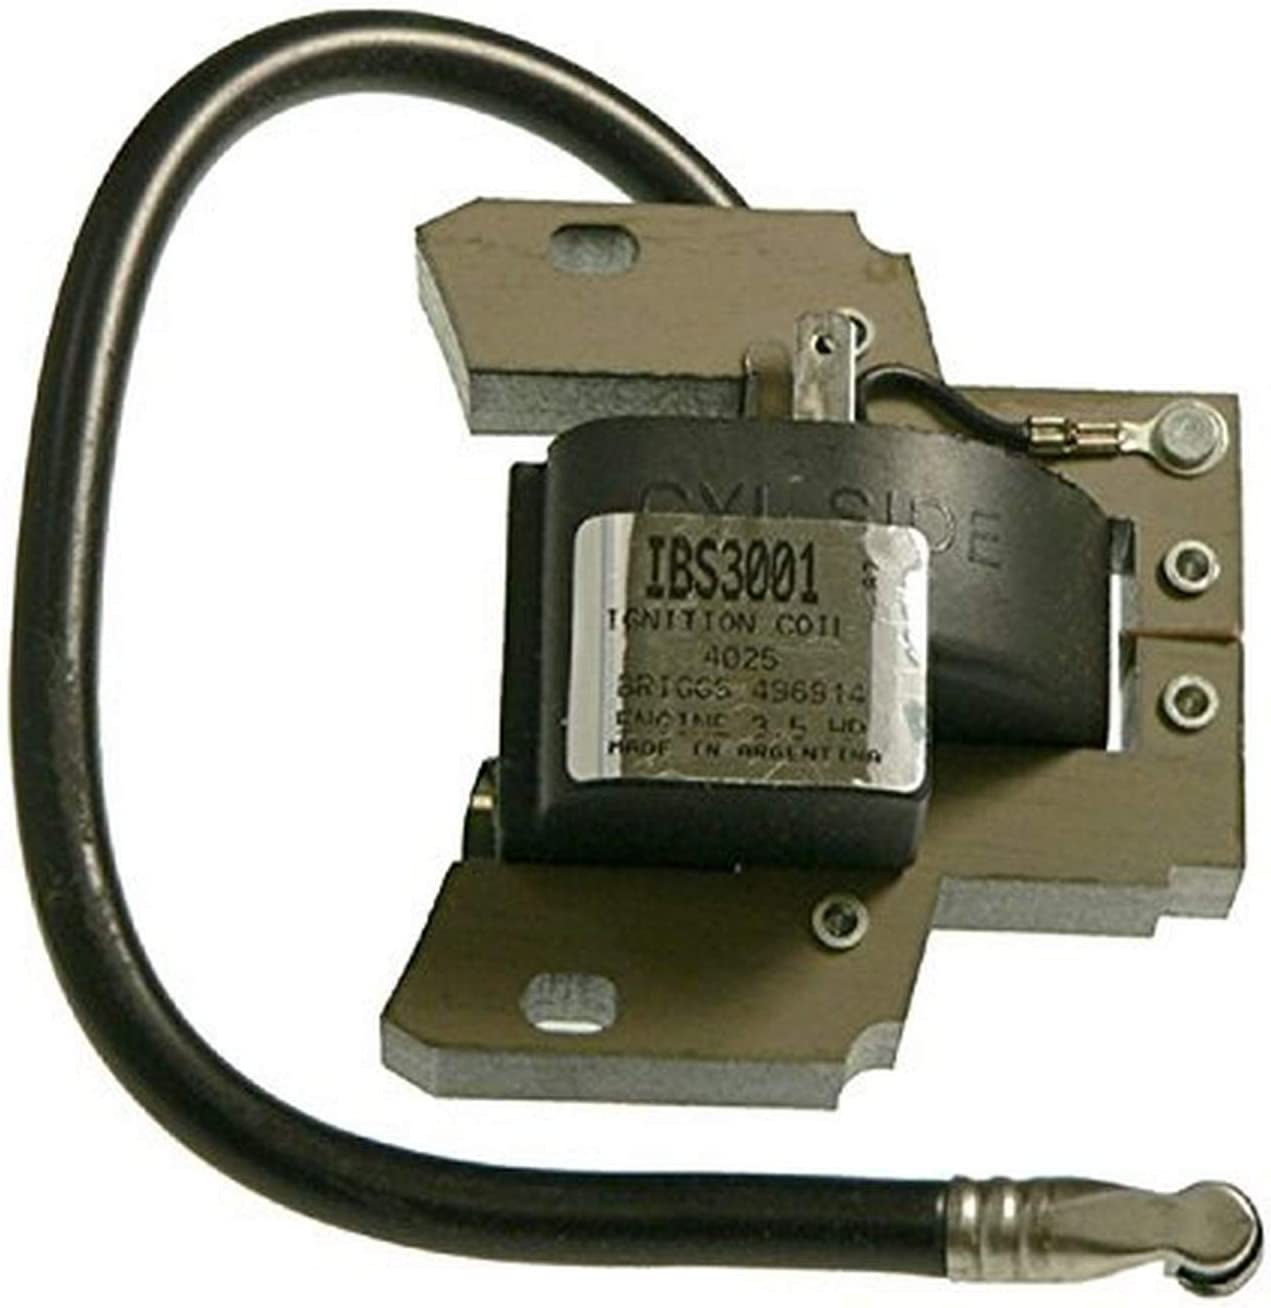 Db Electrical IBS3001 Ignition Coil for Briggs And Stratton 398593 793281